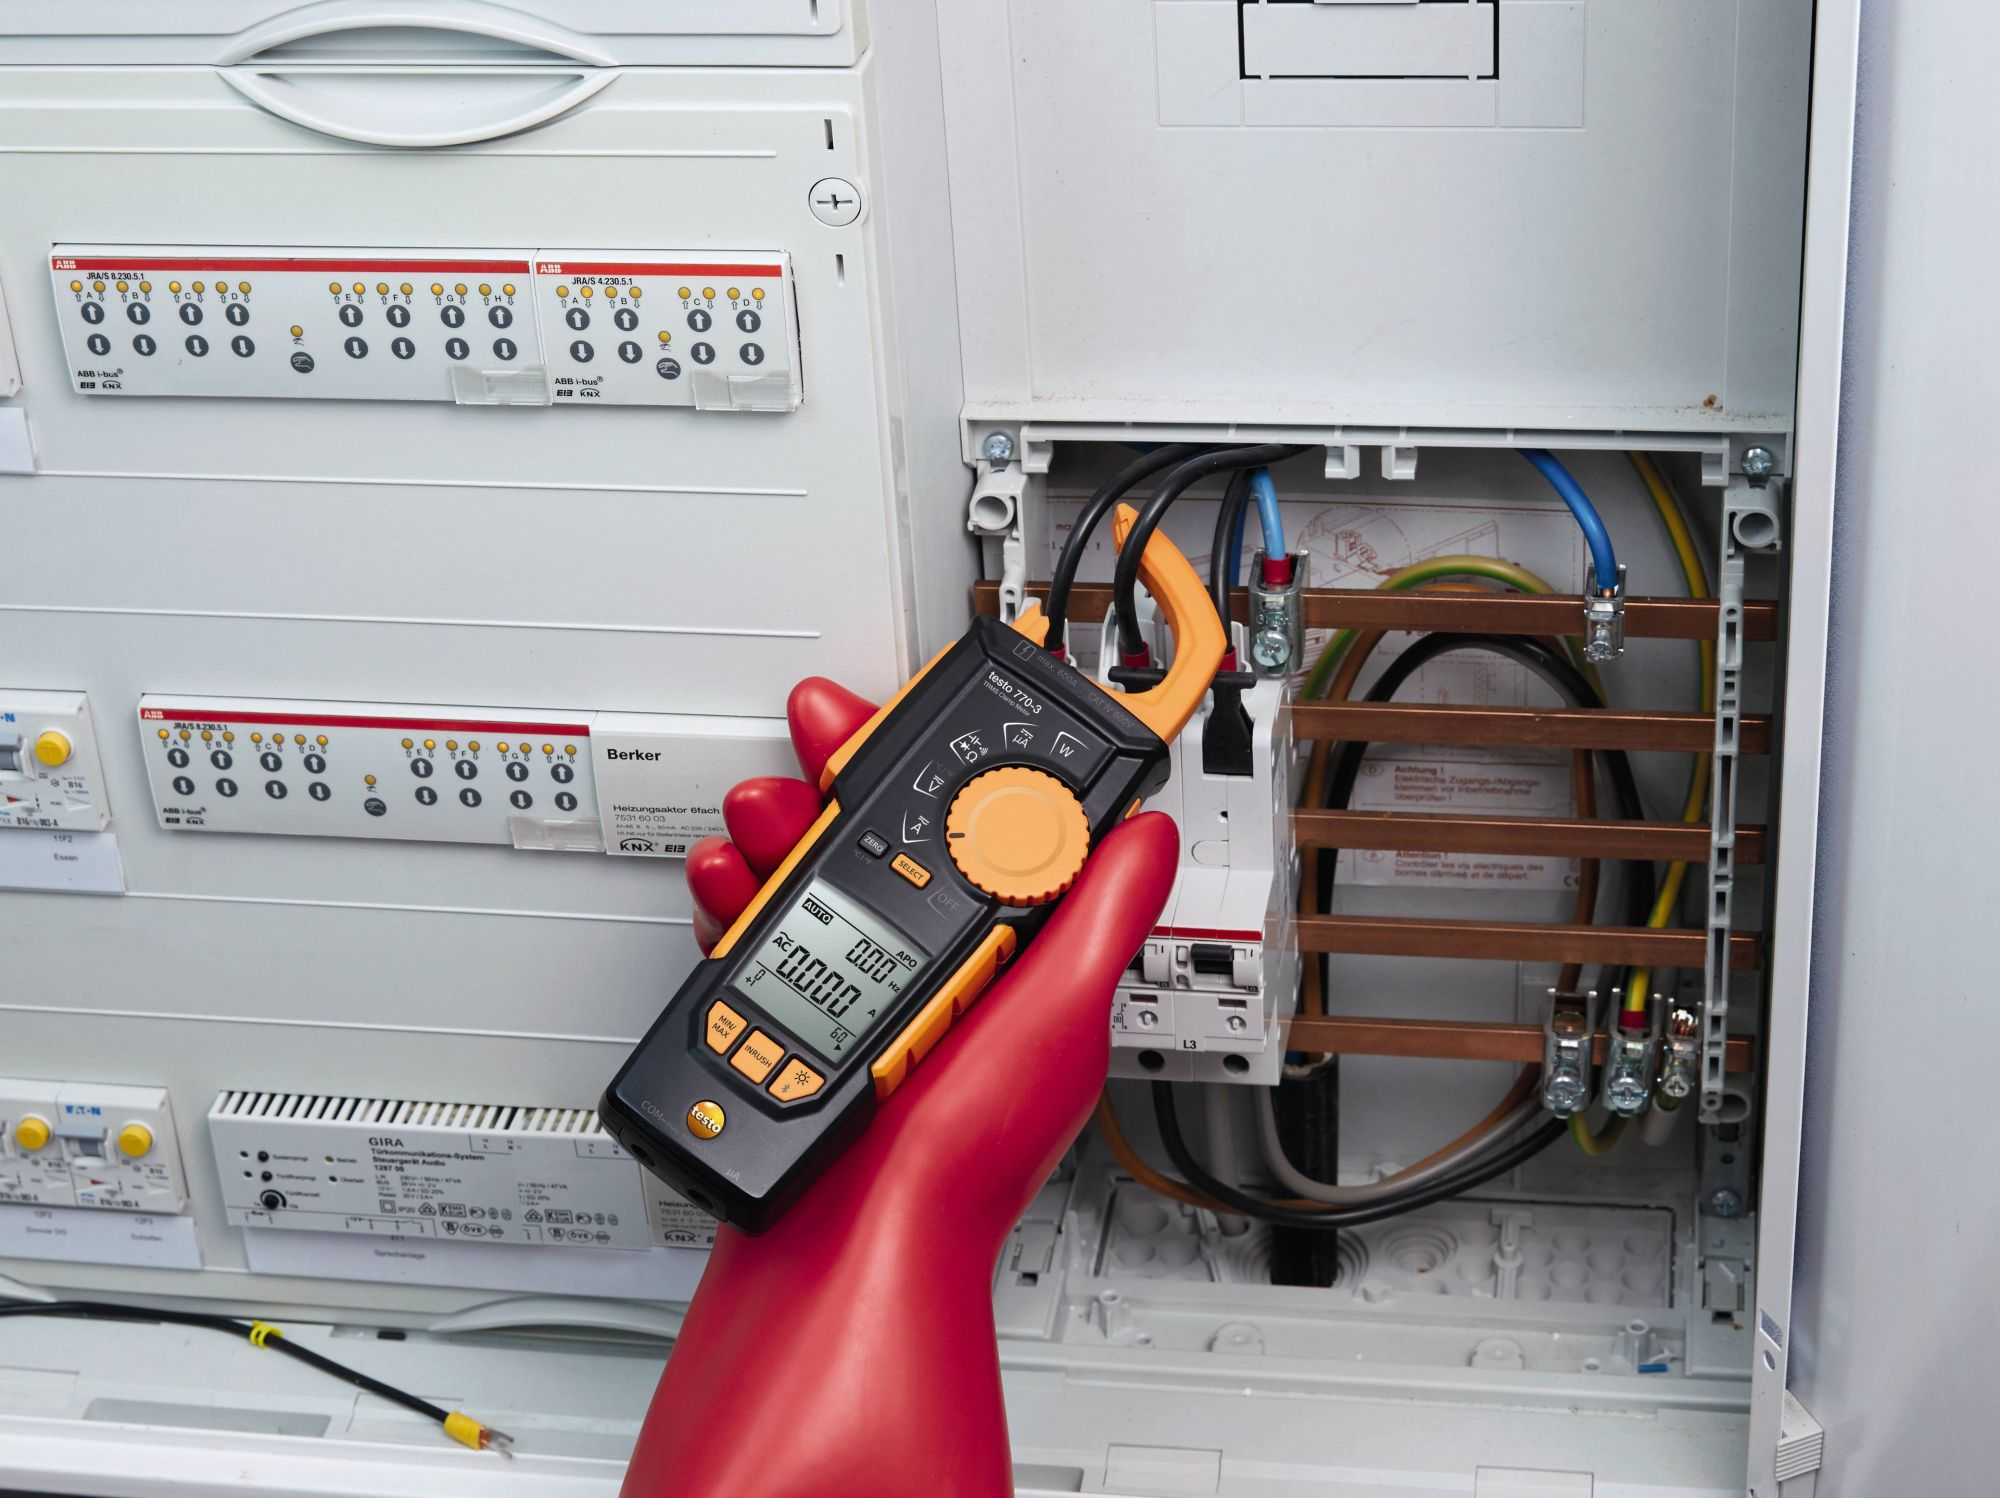 Clamp meter for direct current measurement